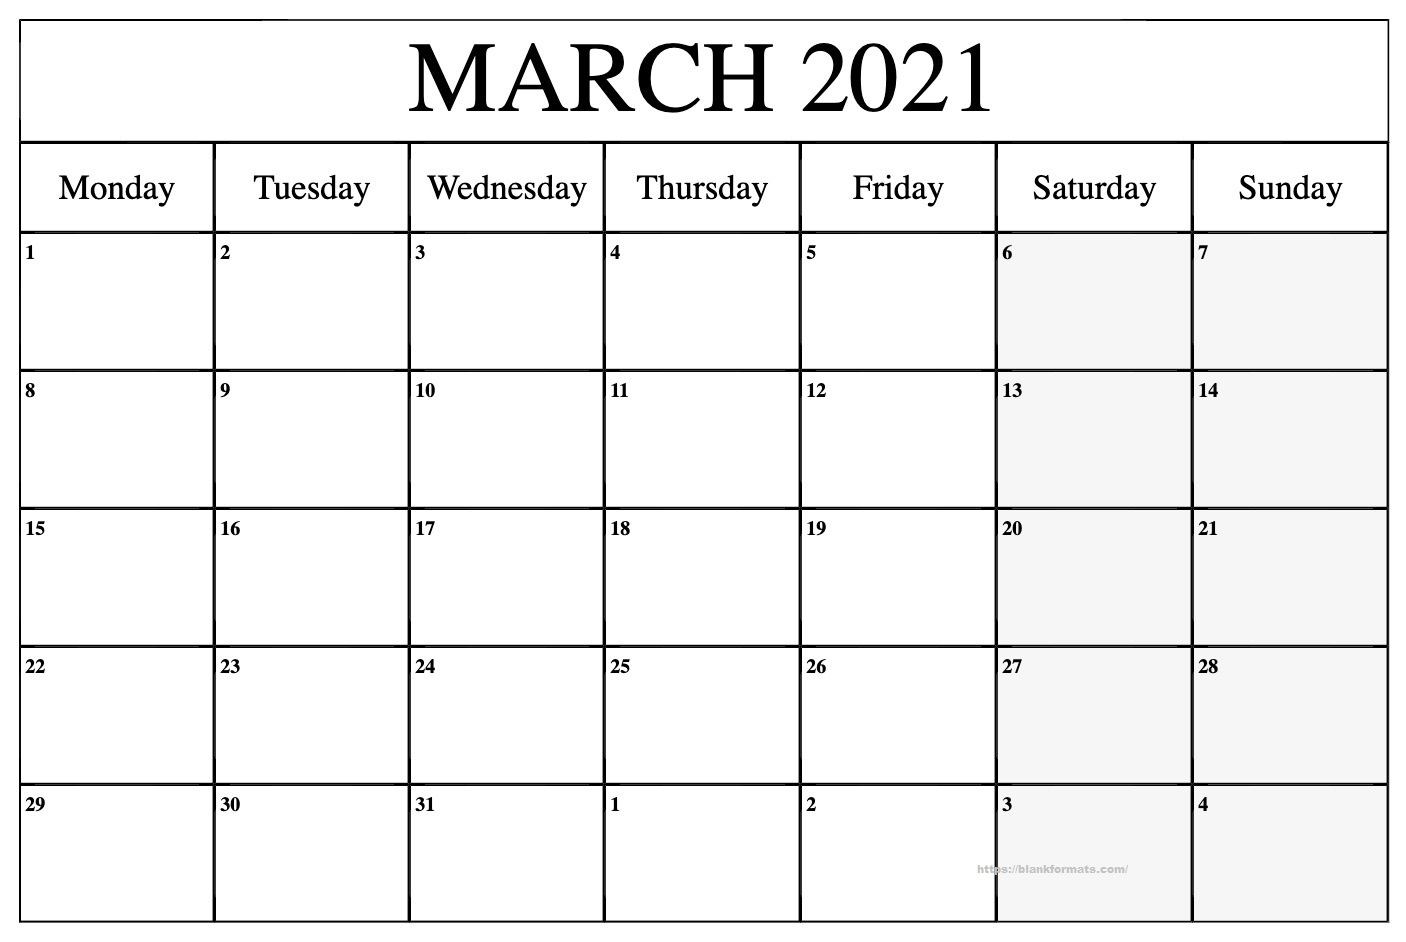 Printable March 2021 Calendar - Pdf, Word, Excel Sheet Within March 2021 Calendar Template